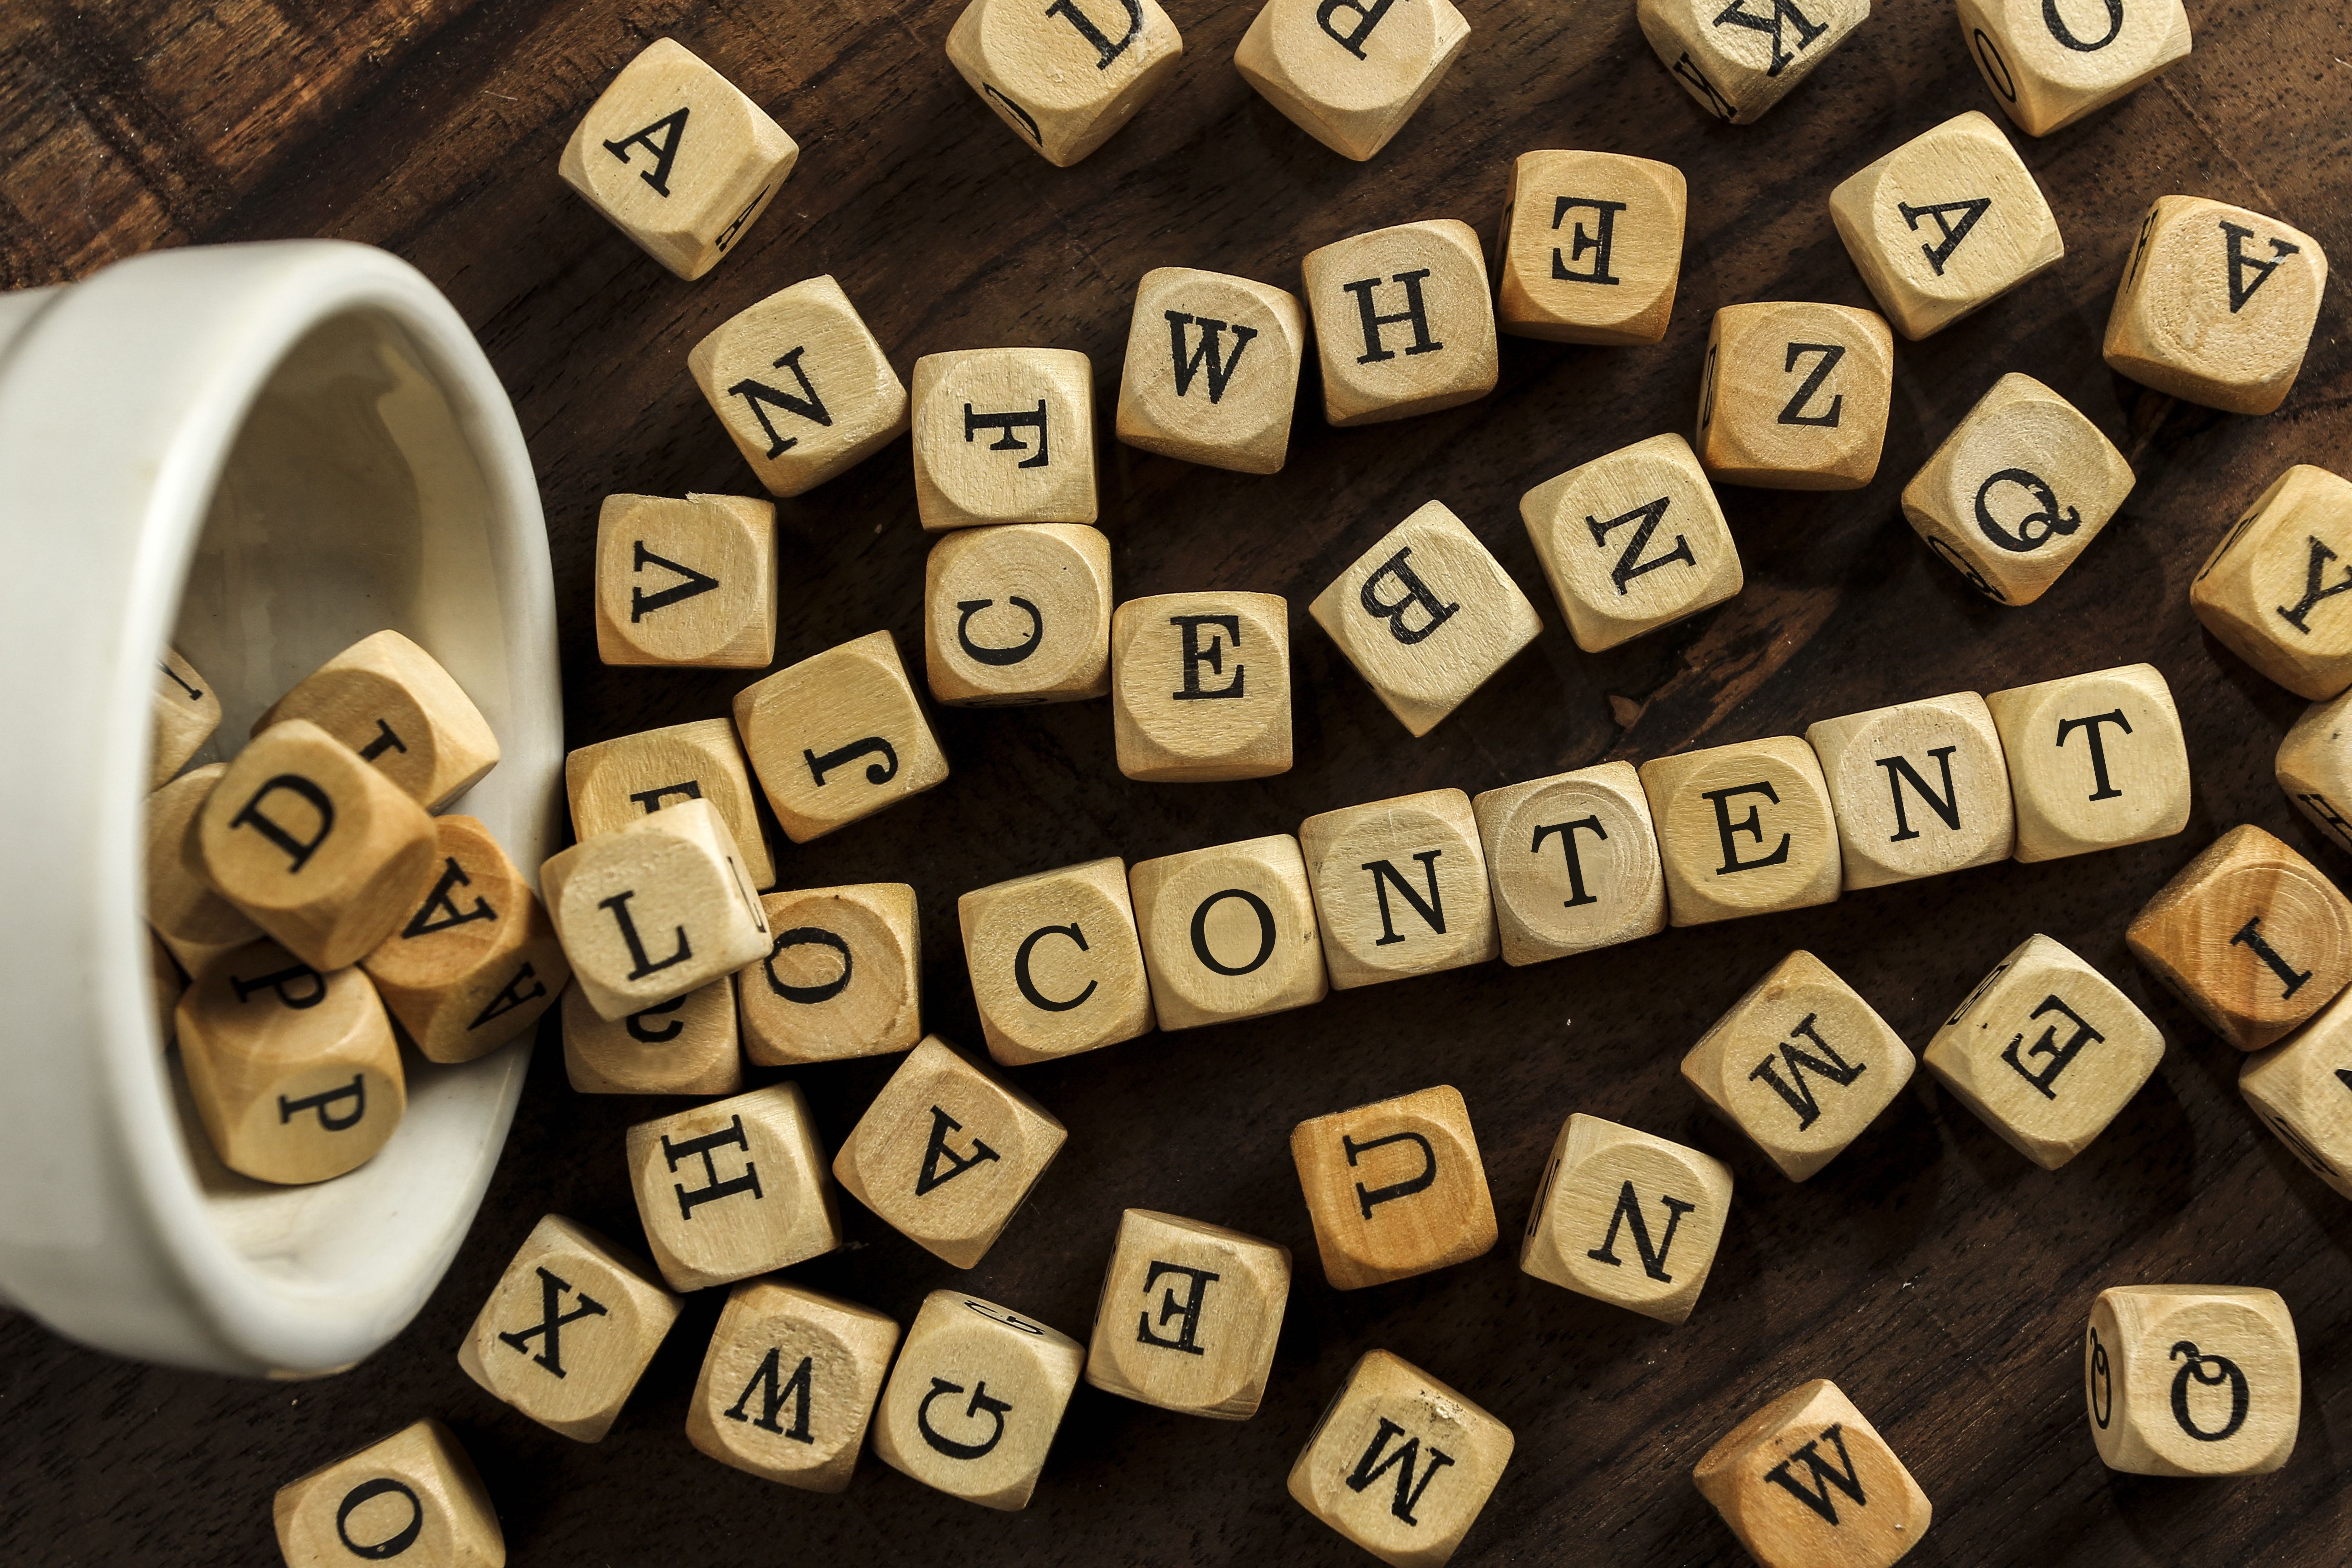 """Lettered cubes spilling out of cup and spell """"Content""""."""